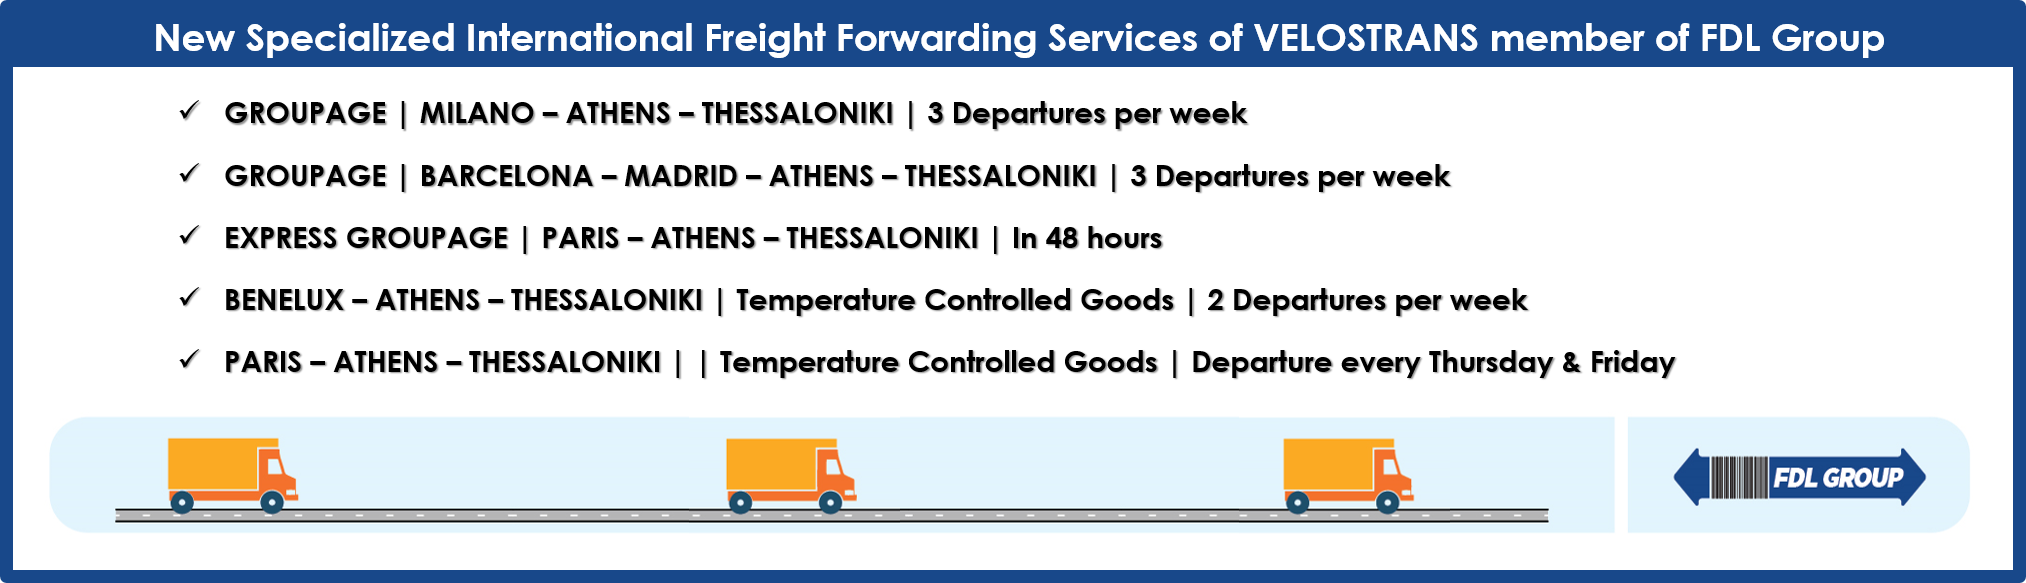 New Specialized International Freight Forwarding Services of FDL Group